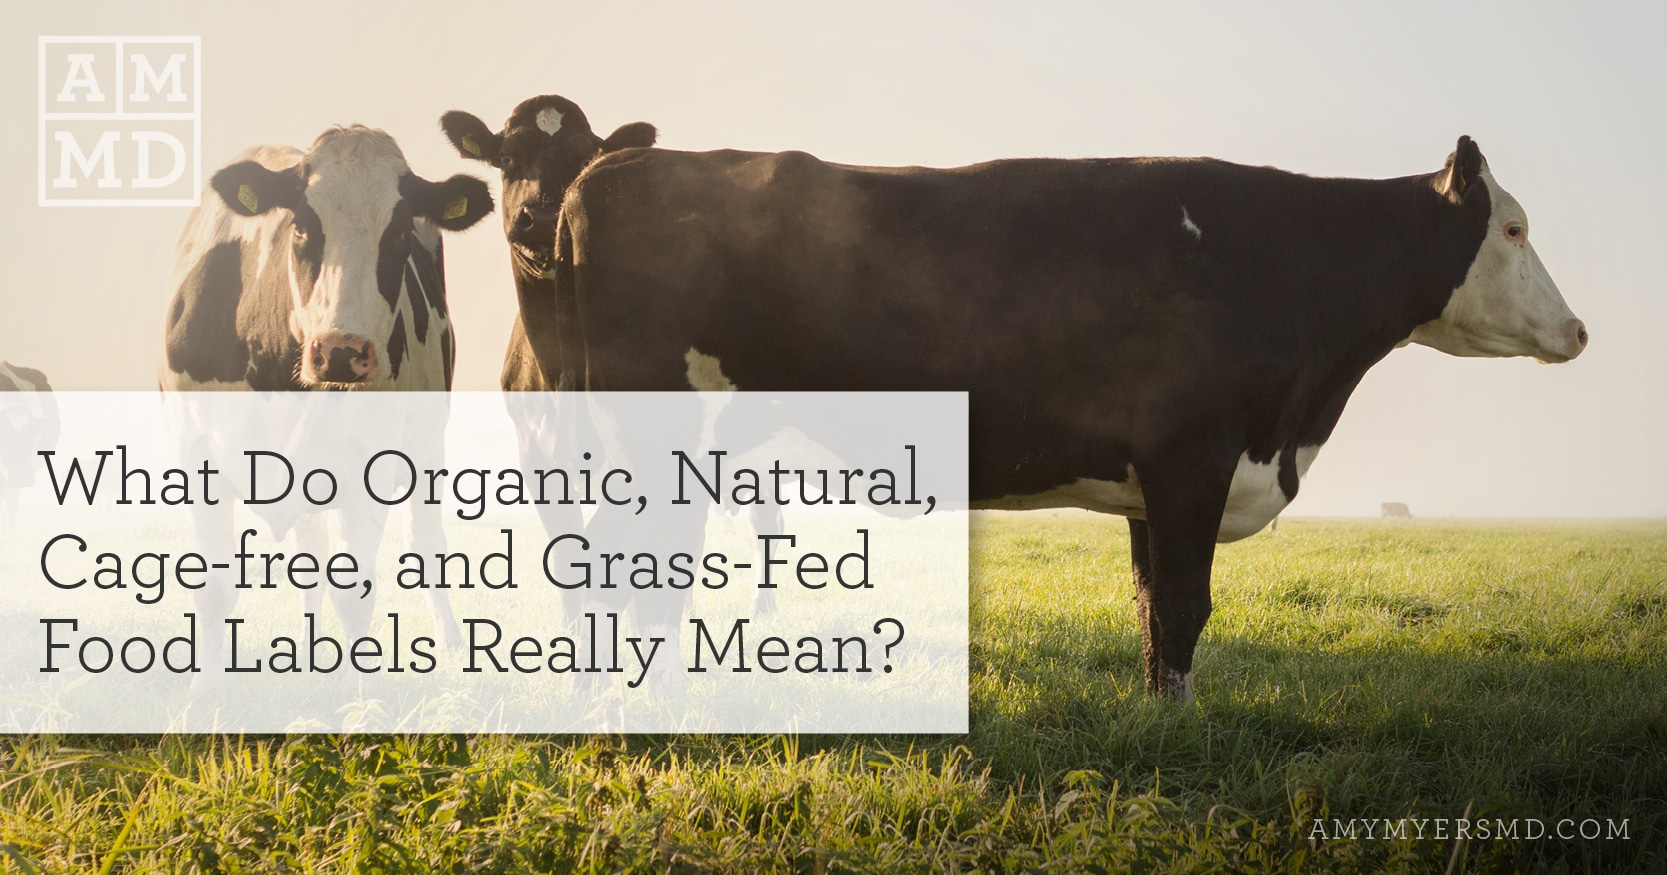 What Do Organic, Natural, Cage-free, and Grass-Fed Food Labels Really Mean? - Cows In A Field - Featured Image - Amy Myers MD